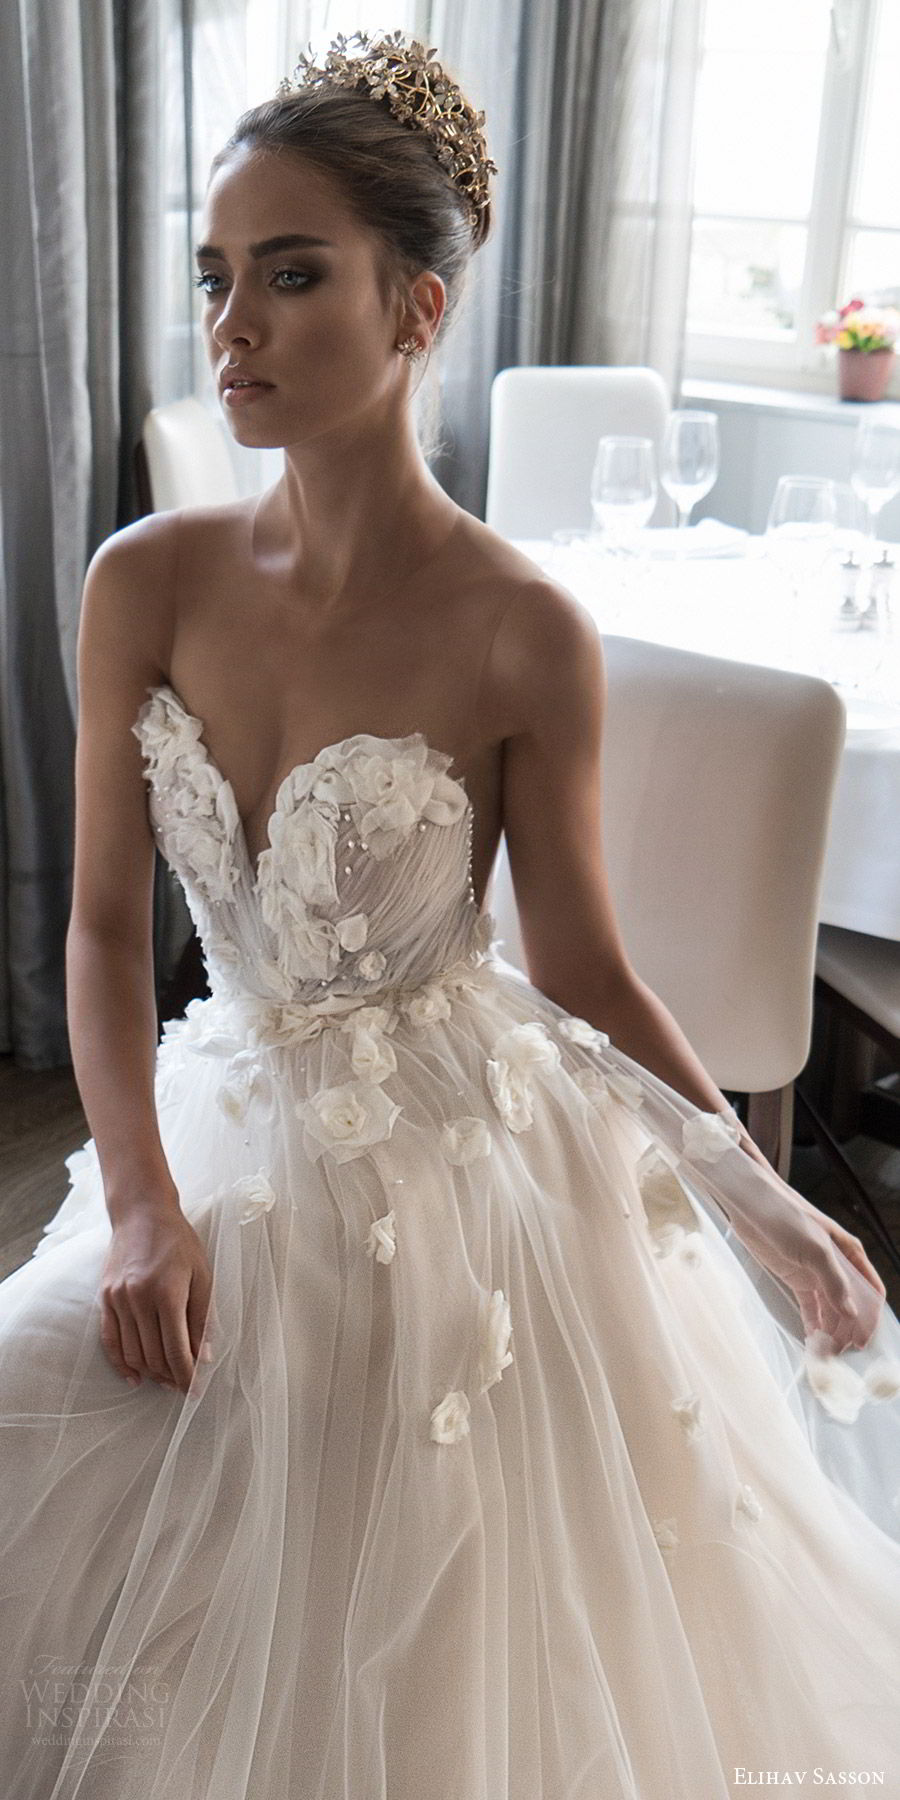 elihav sasson spring 2018 bridal sleeveless illusion jewel sweetheart embellished ruched bodice tulle ball gown wedding dress (vj 007) zv sweep train romantic princess